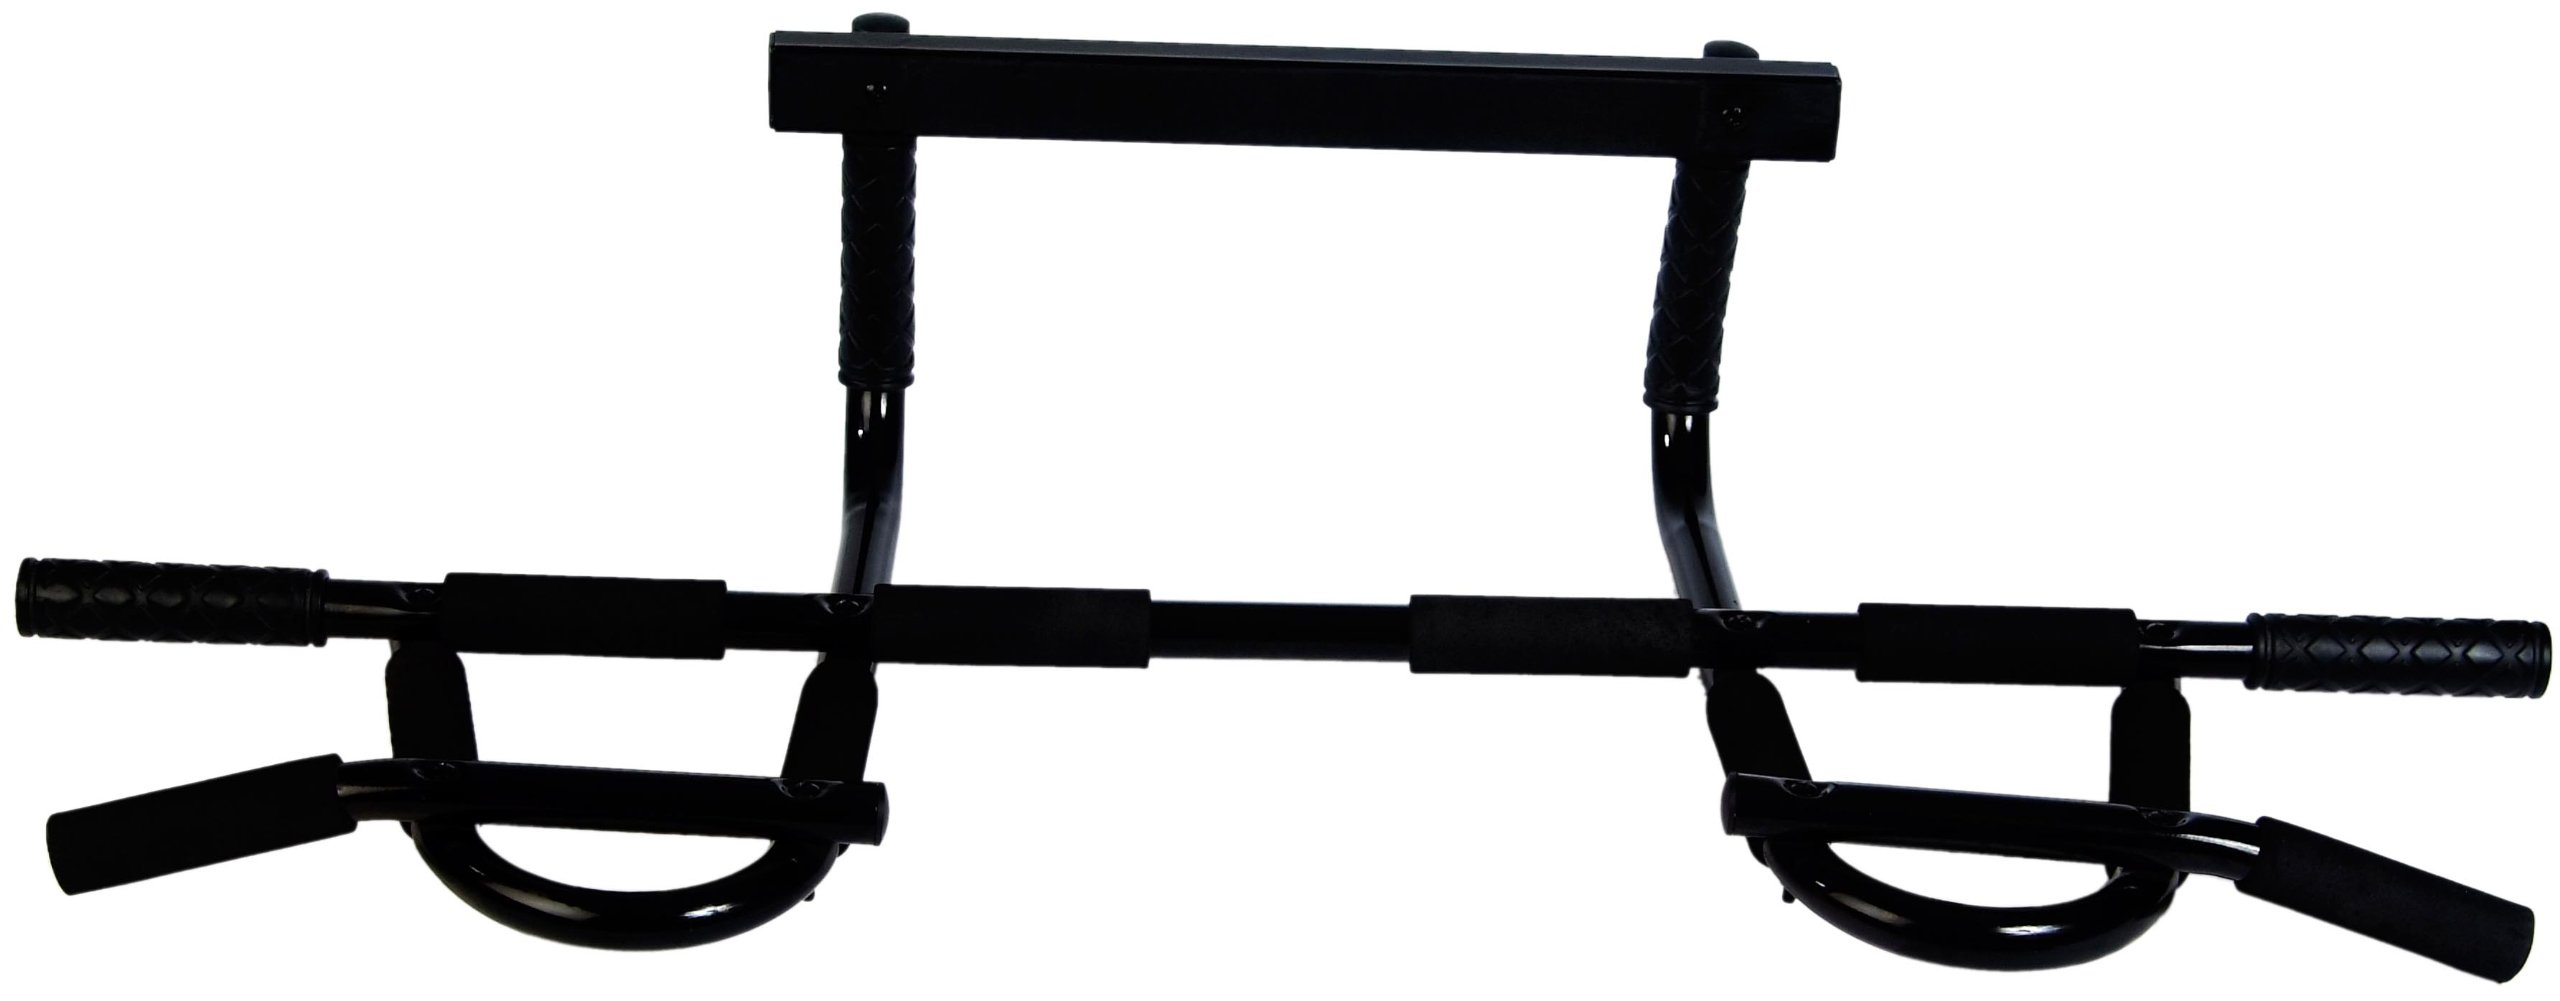 Black Mountain Products New Heavy Duty Bmp Doorway Chin Up Pull Up Bar by Black Mountain